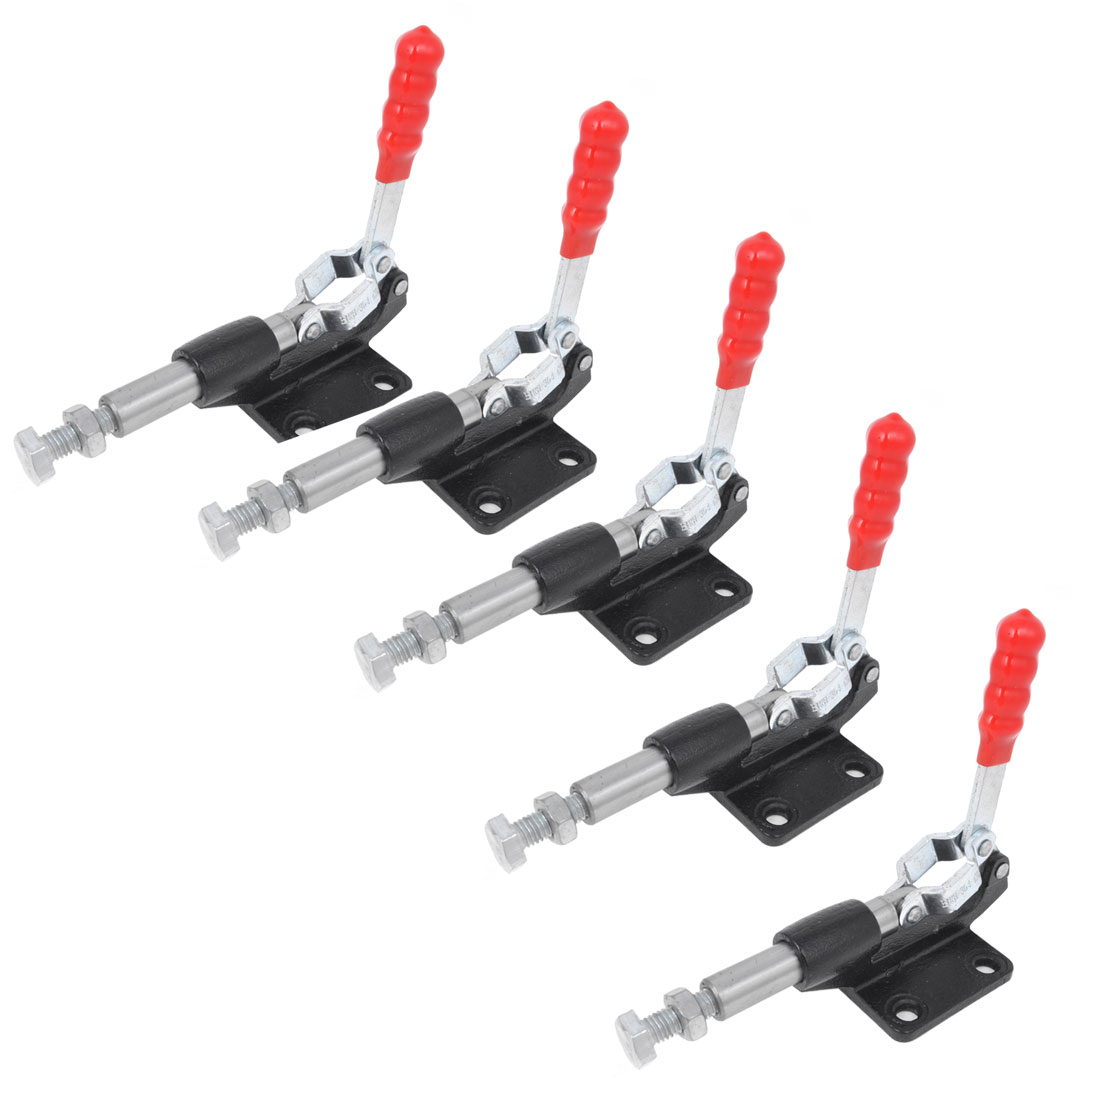 5PCS Quickly Holding U Shaped Bar Push Pull Toggle Clamp 227Kg 304C